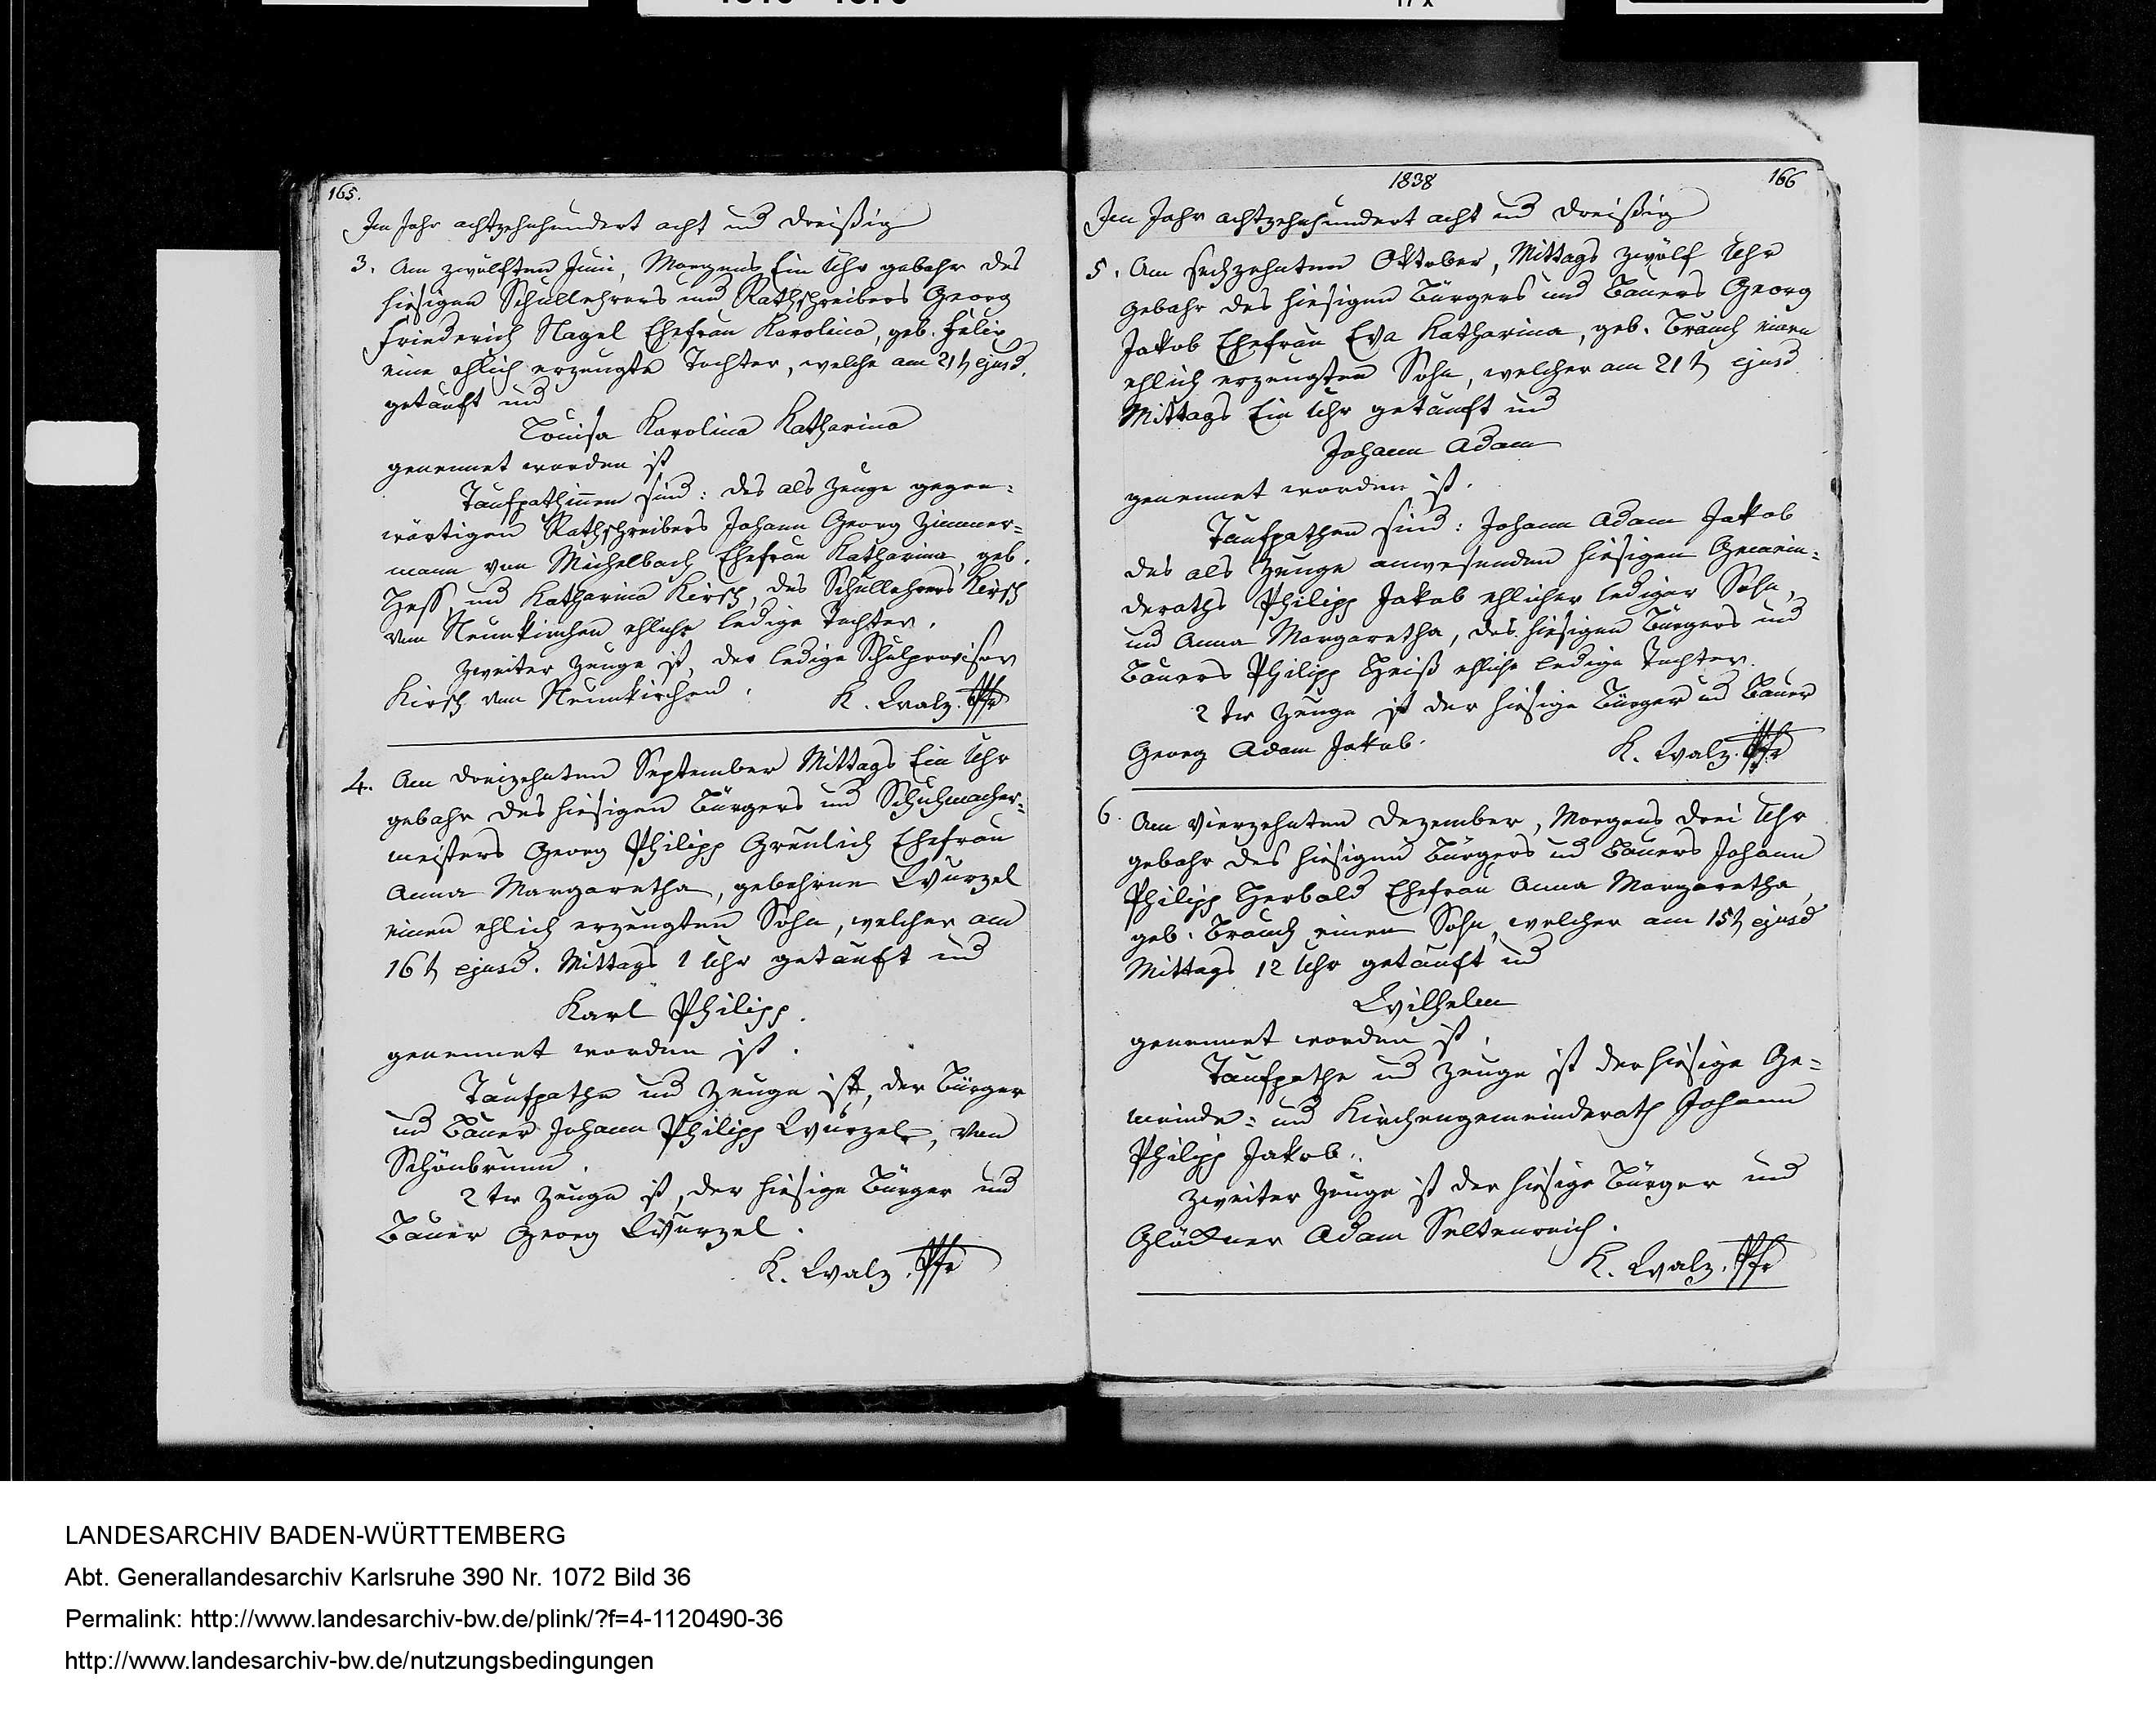 1838 Karl Philip Greulich birth record from the Baden-Wuerttemberg Landesarchiv